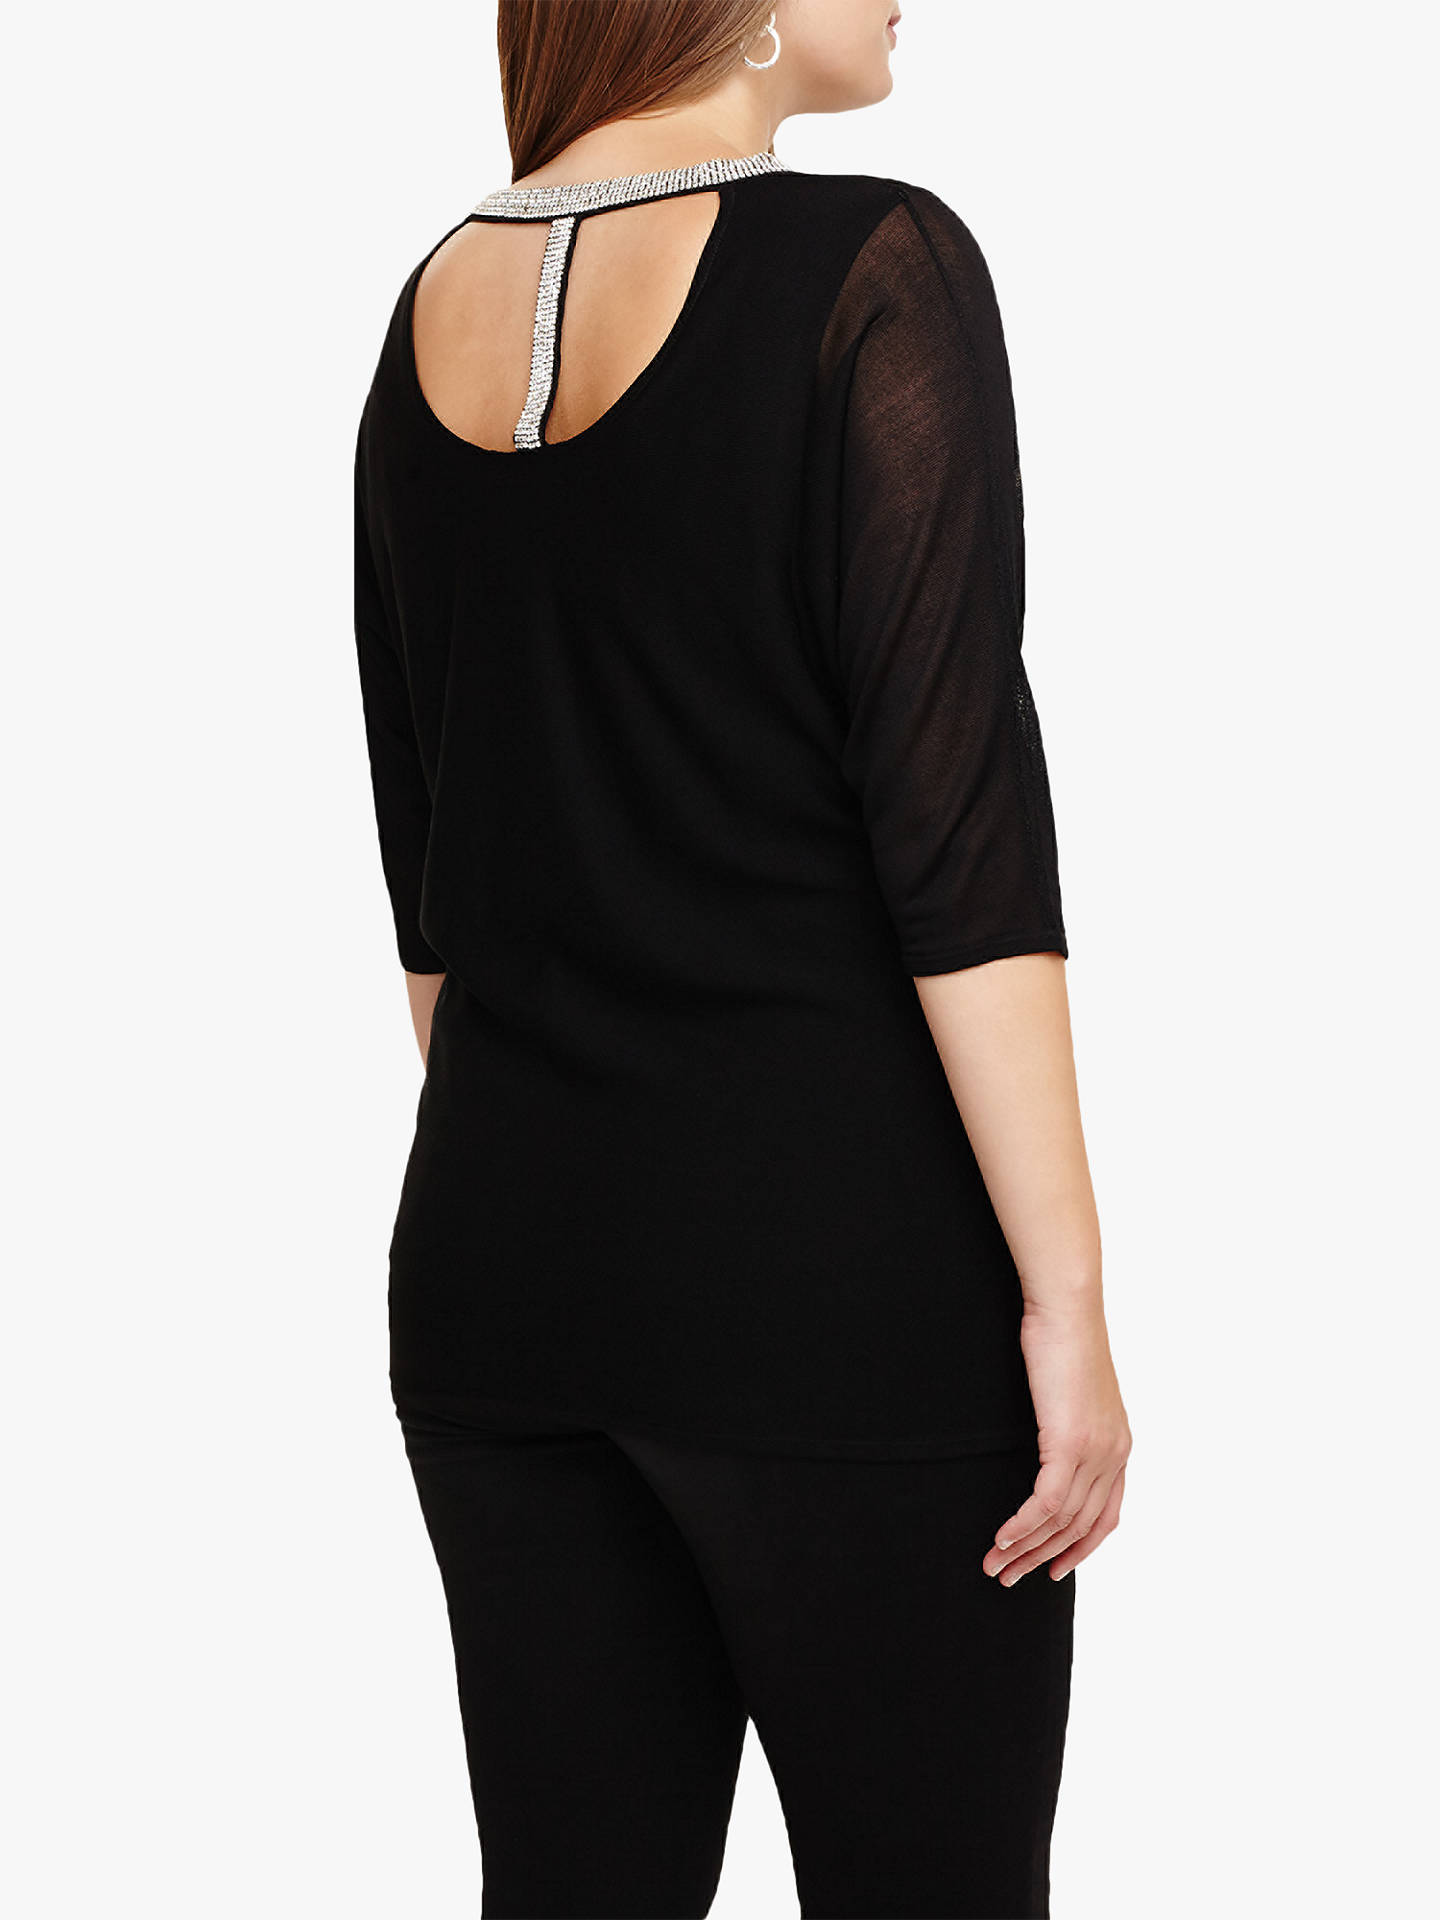 BuyStudio 8 Daisy Knit Top, Black, 16 Online at johnlewis.com